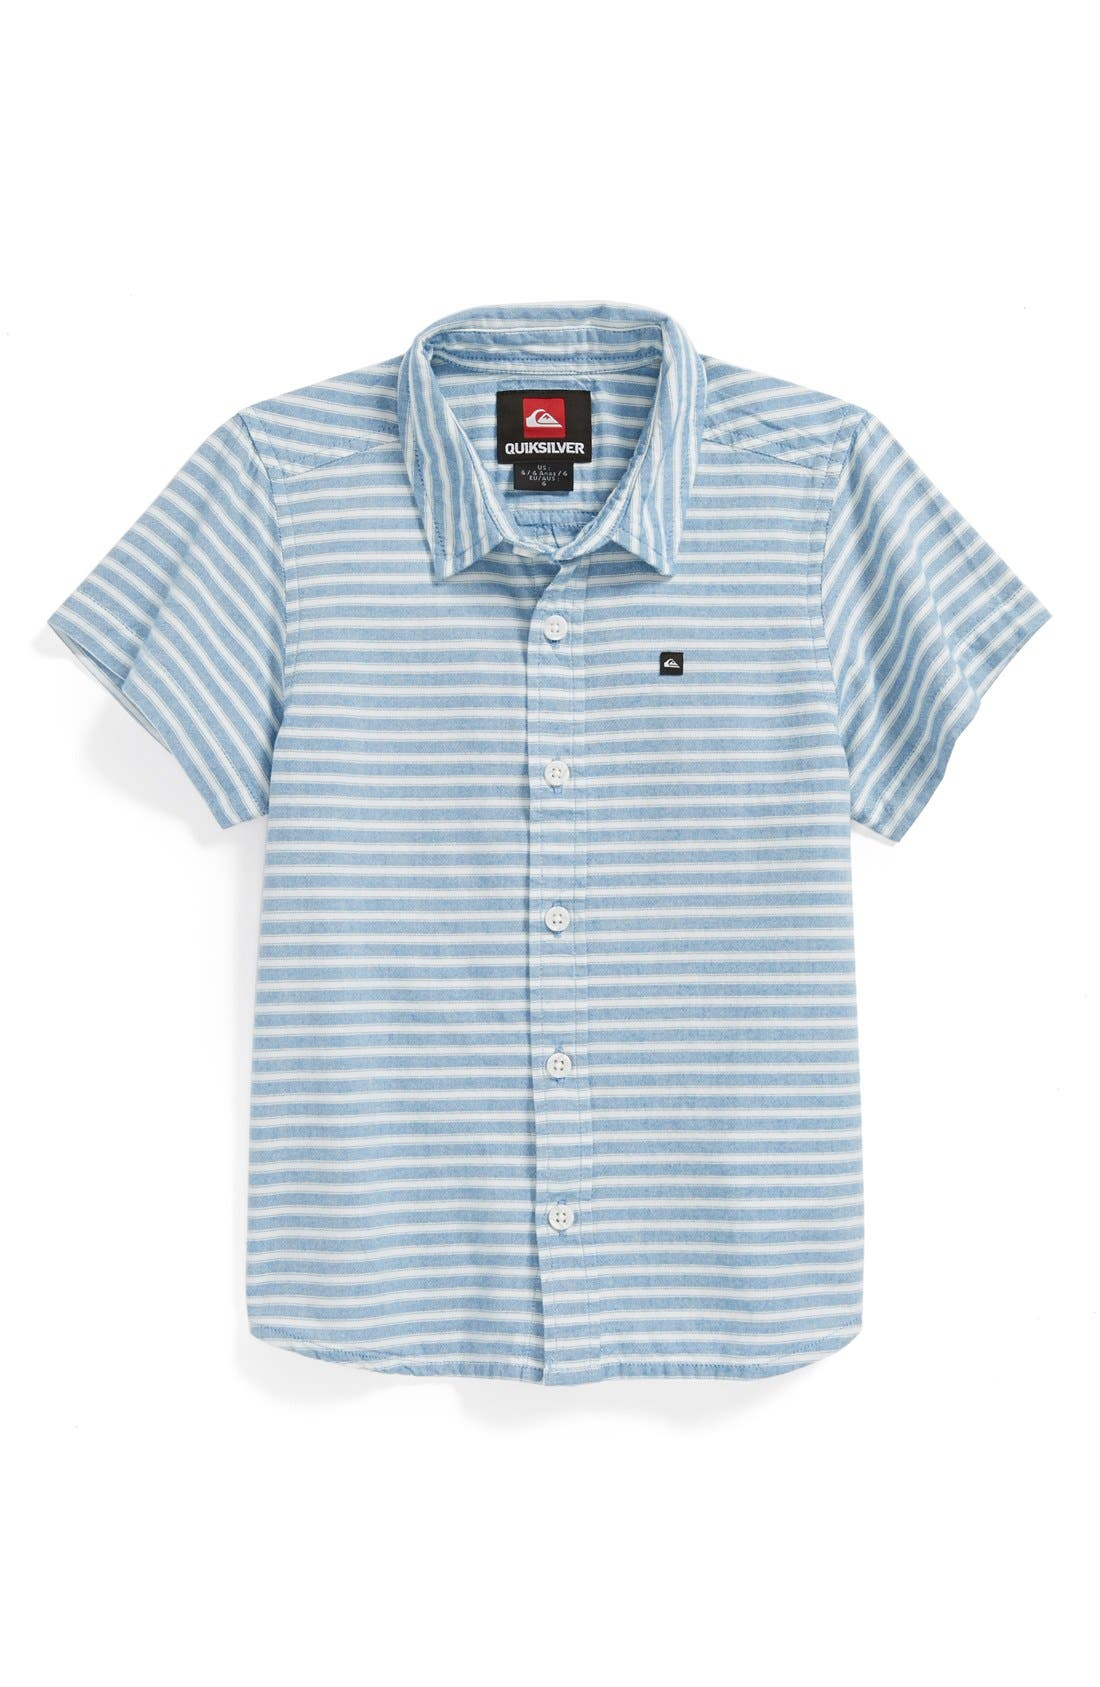 Main Image - Quiksilver 'Swamis' Stripe Shirt (Little Boys)